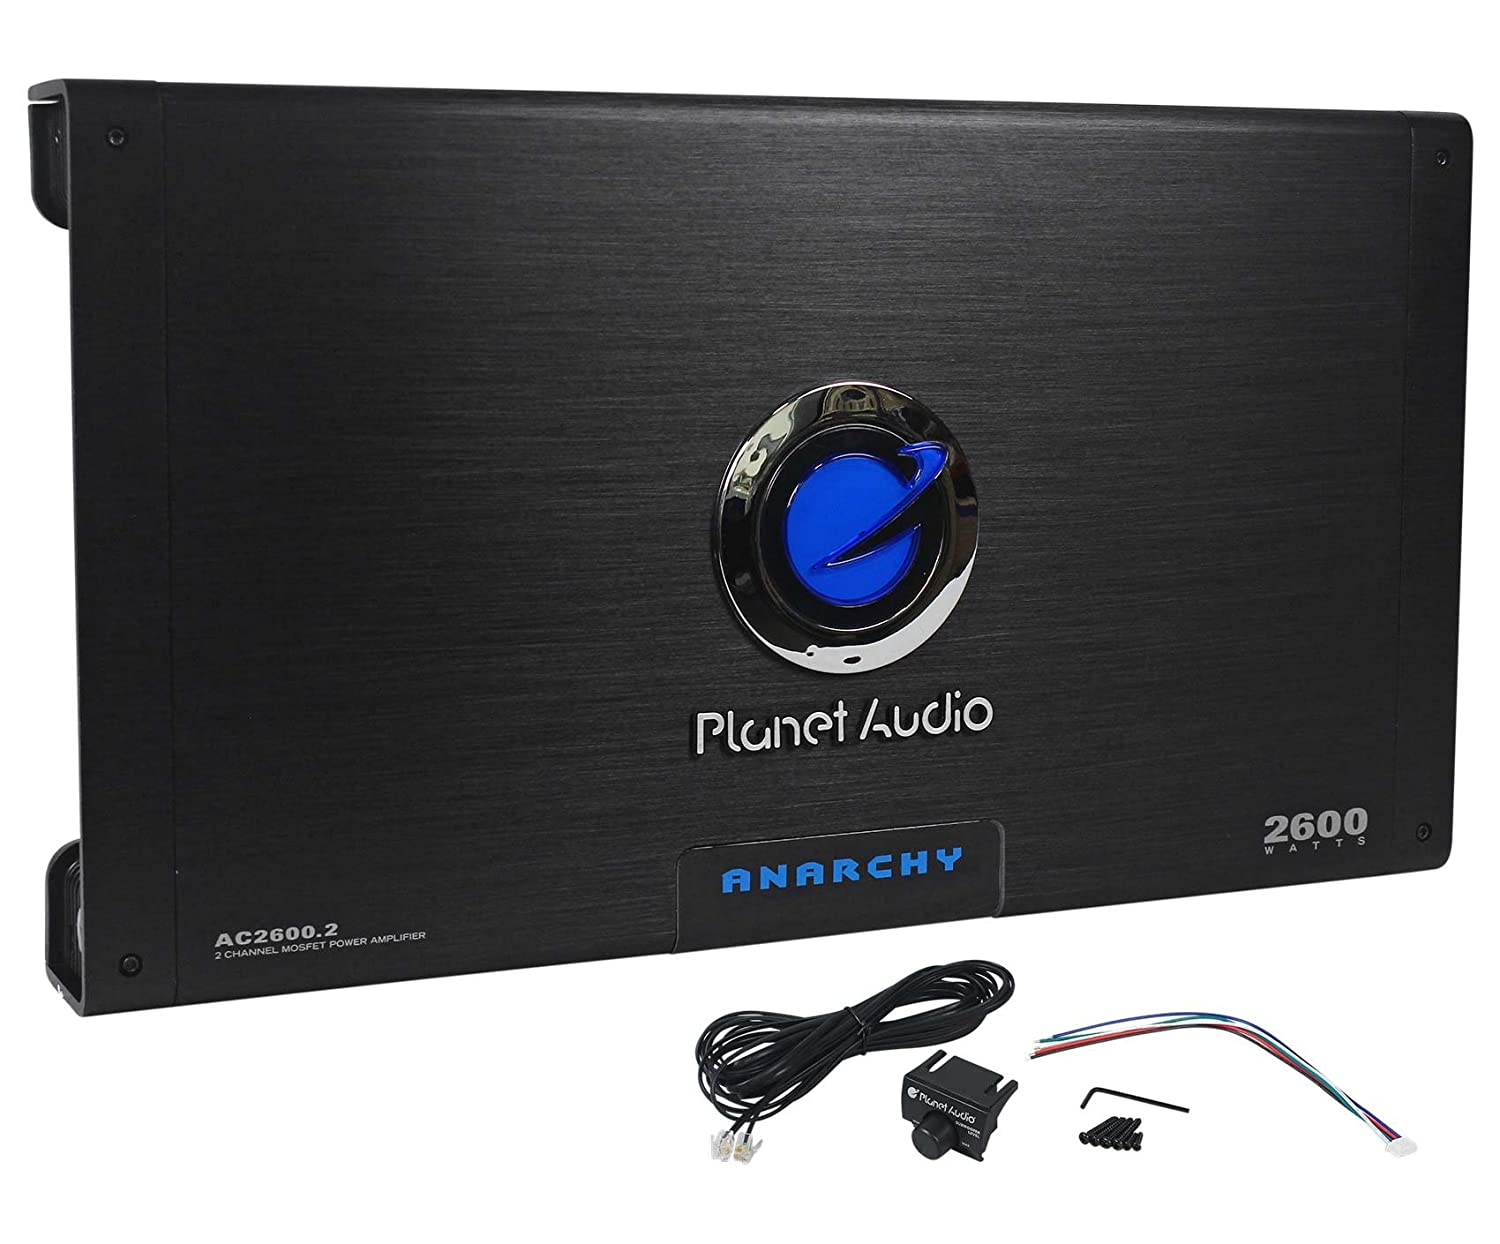 715pwSEBkwL._SL1500_ amazon com planet audio ac2600 2 2600 watt 2 channel car power  at crackthecode.co